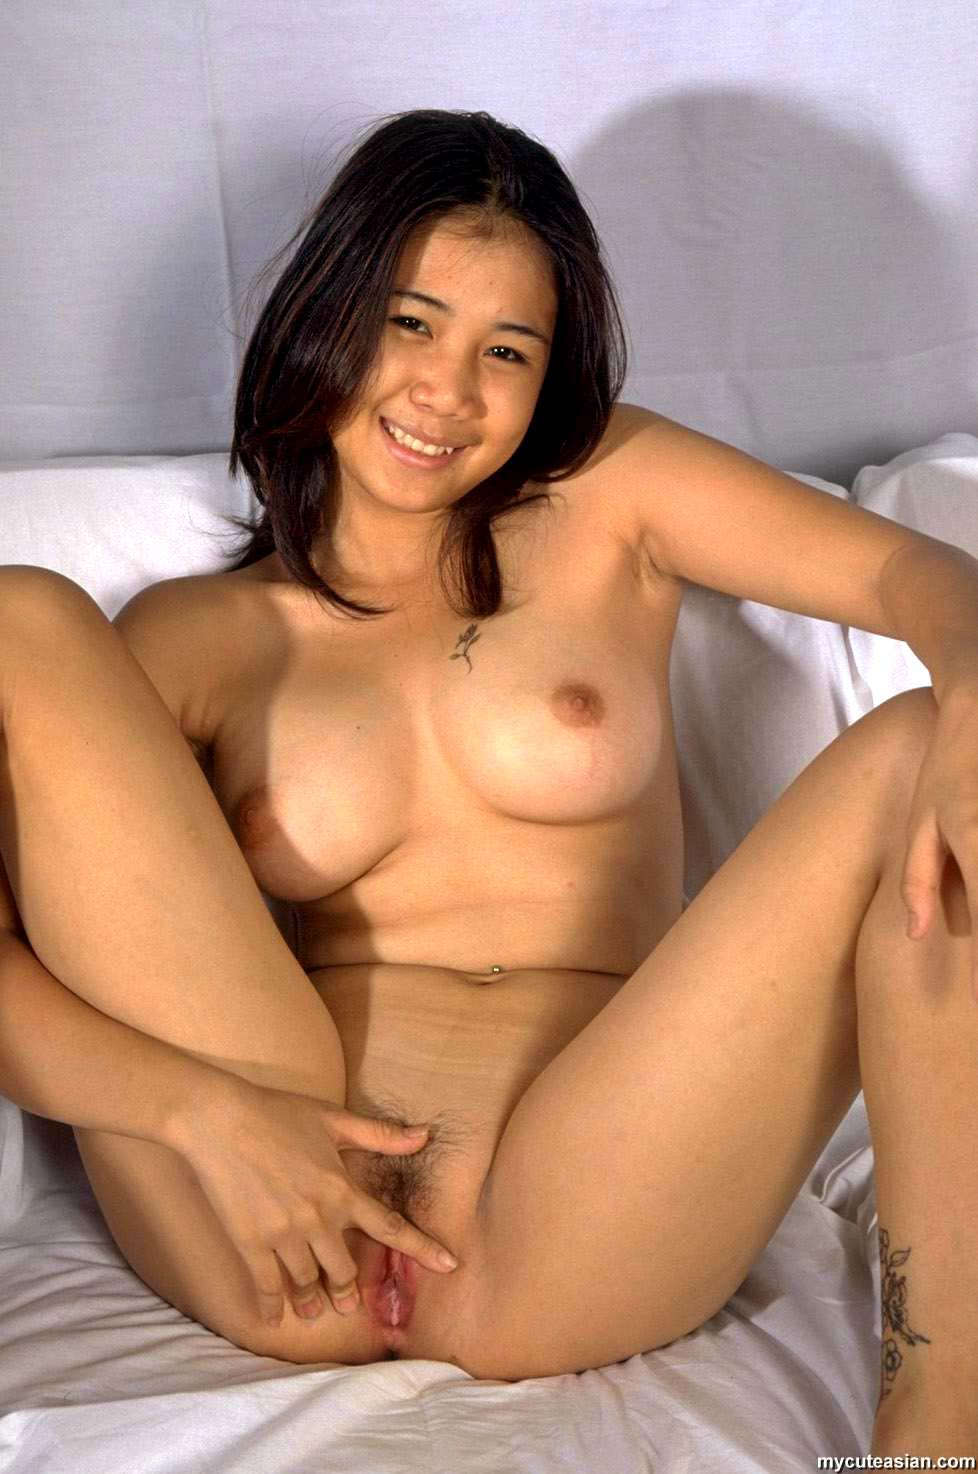 Picture of a double amputy girl nude and fuck